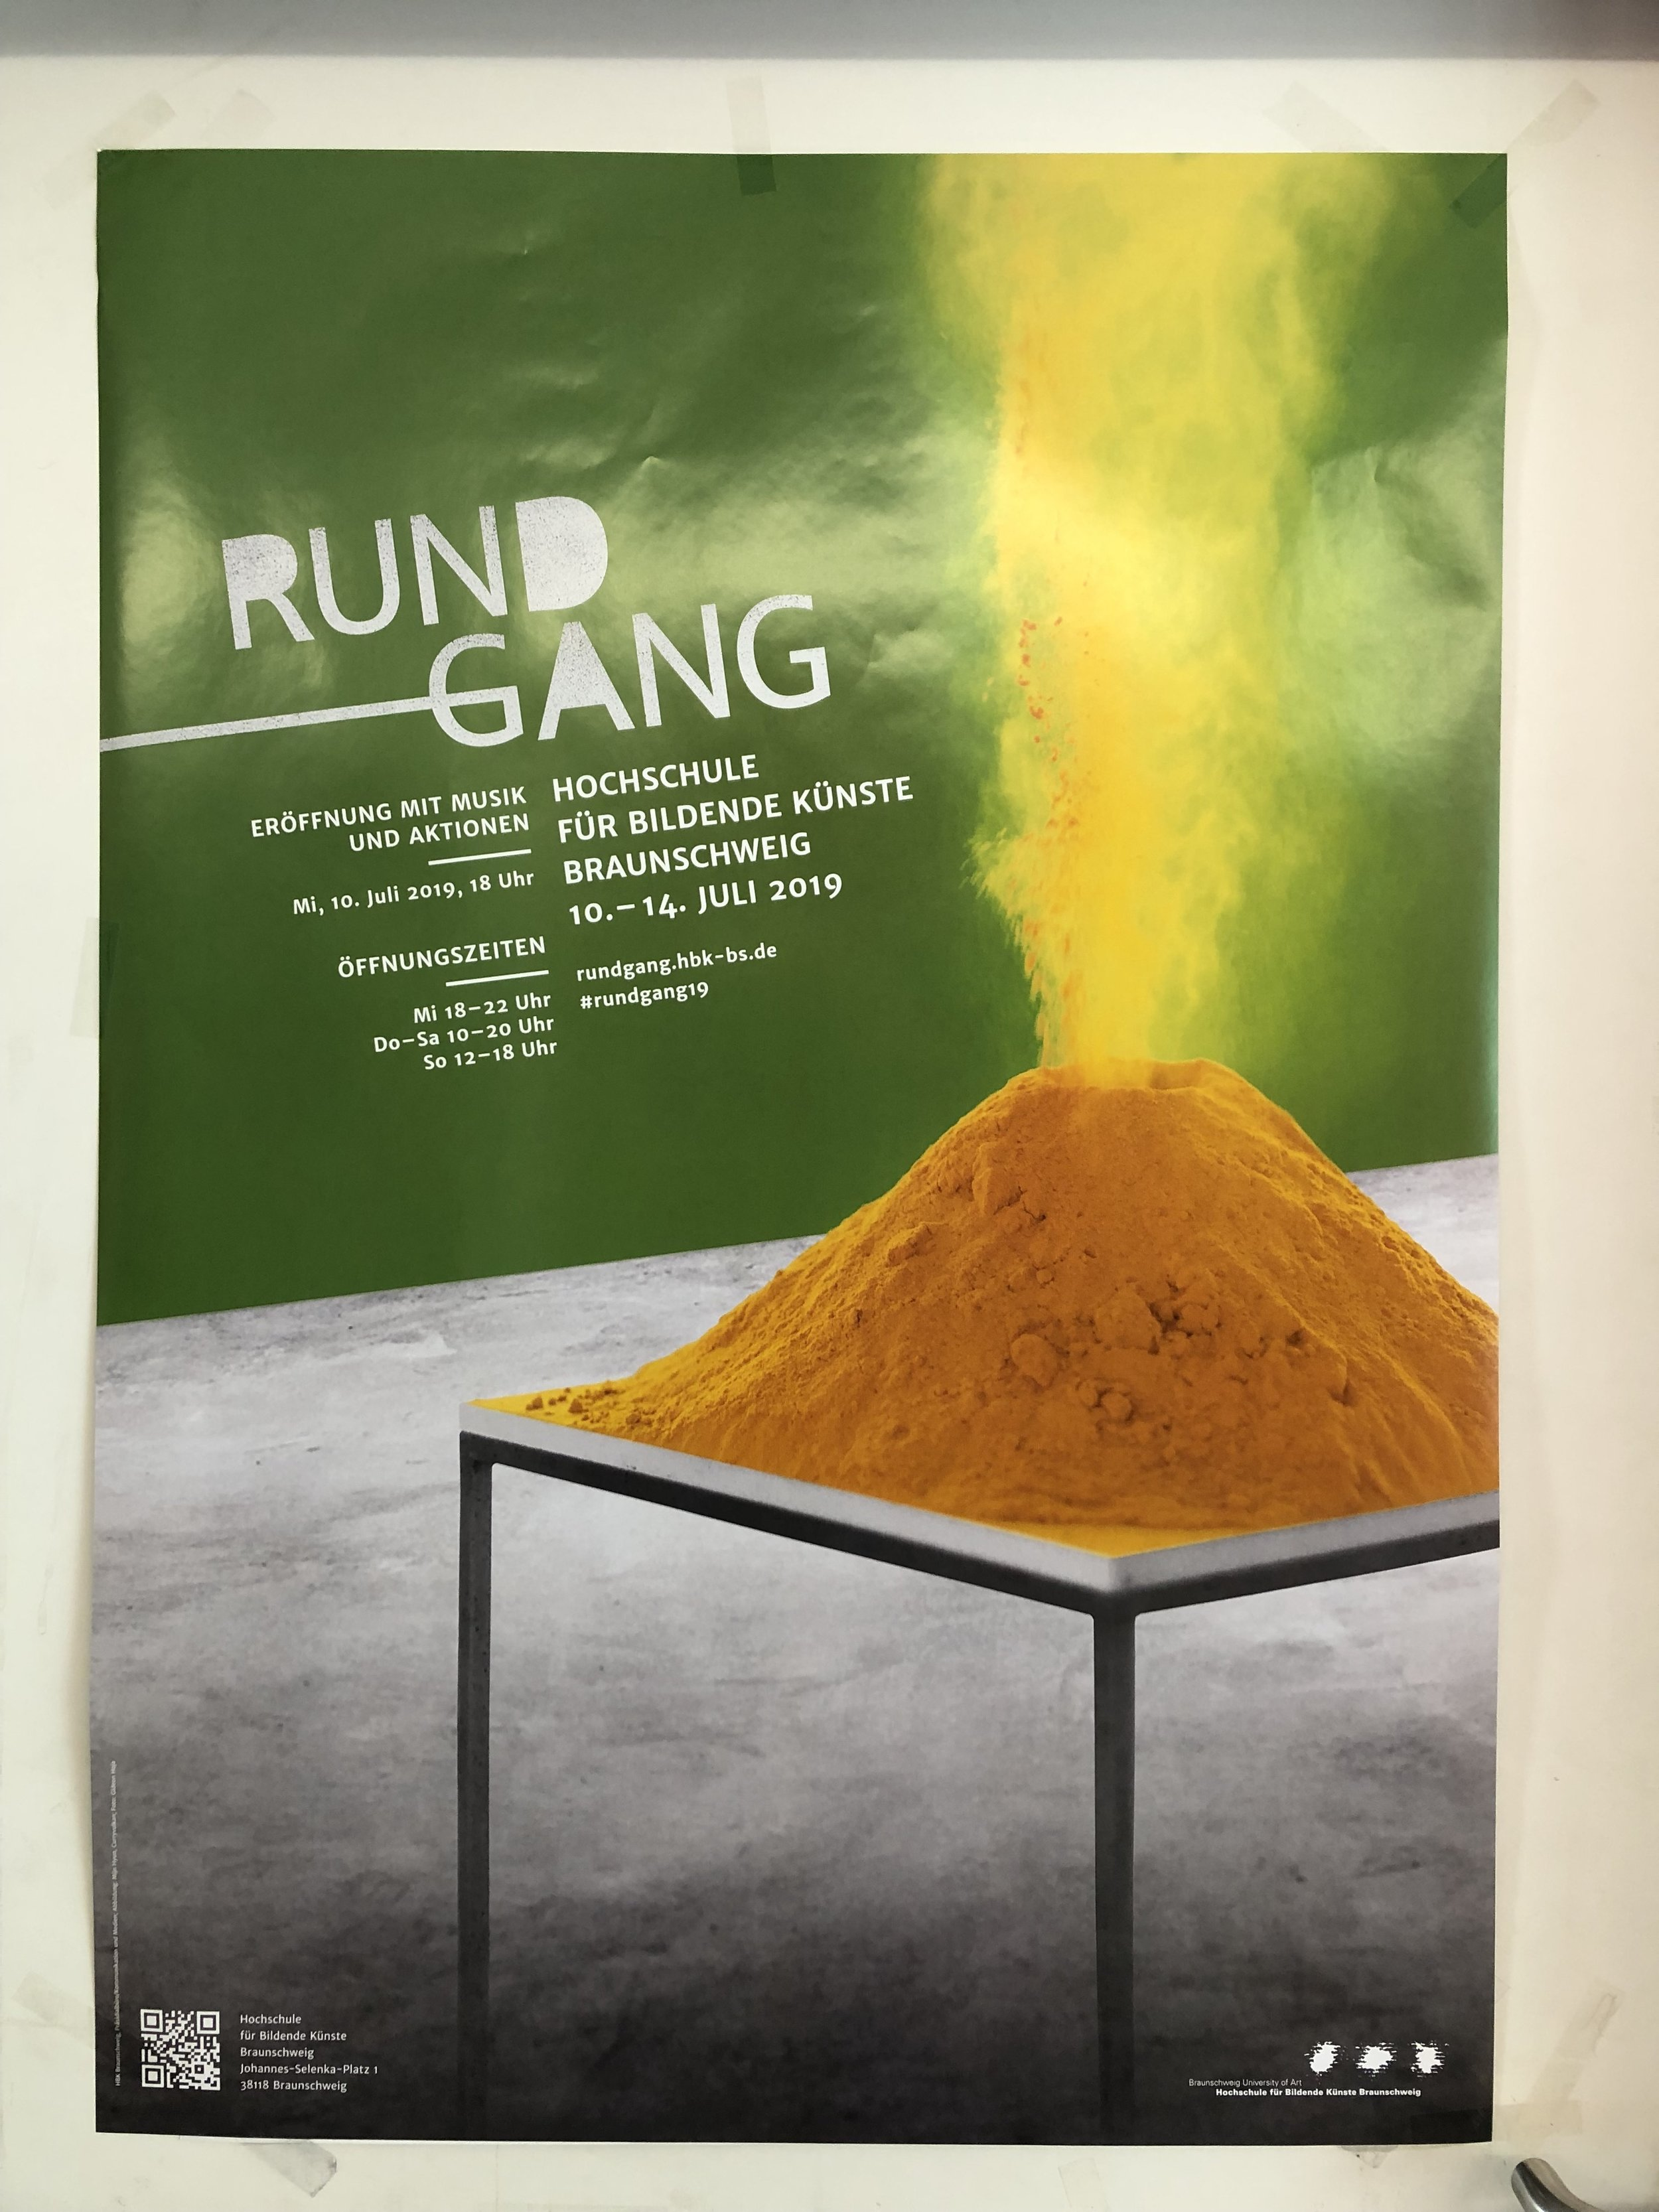 - Showing work at HBK Rundgang for this year, July 2019Rundgang posterThe Rundgang or Open doors is an annual event where art students and scholars show work and open their studios for a sequence of 3 days full of talks, performances, and all kind of art.I am showing new work from my current project (Was that really you?) that looks into Egyptian Tabloids, specified in sensational crime stories and celebrities gossip, as a public platform using images of women.